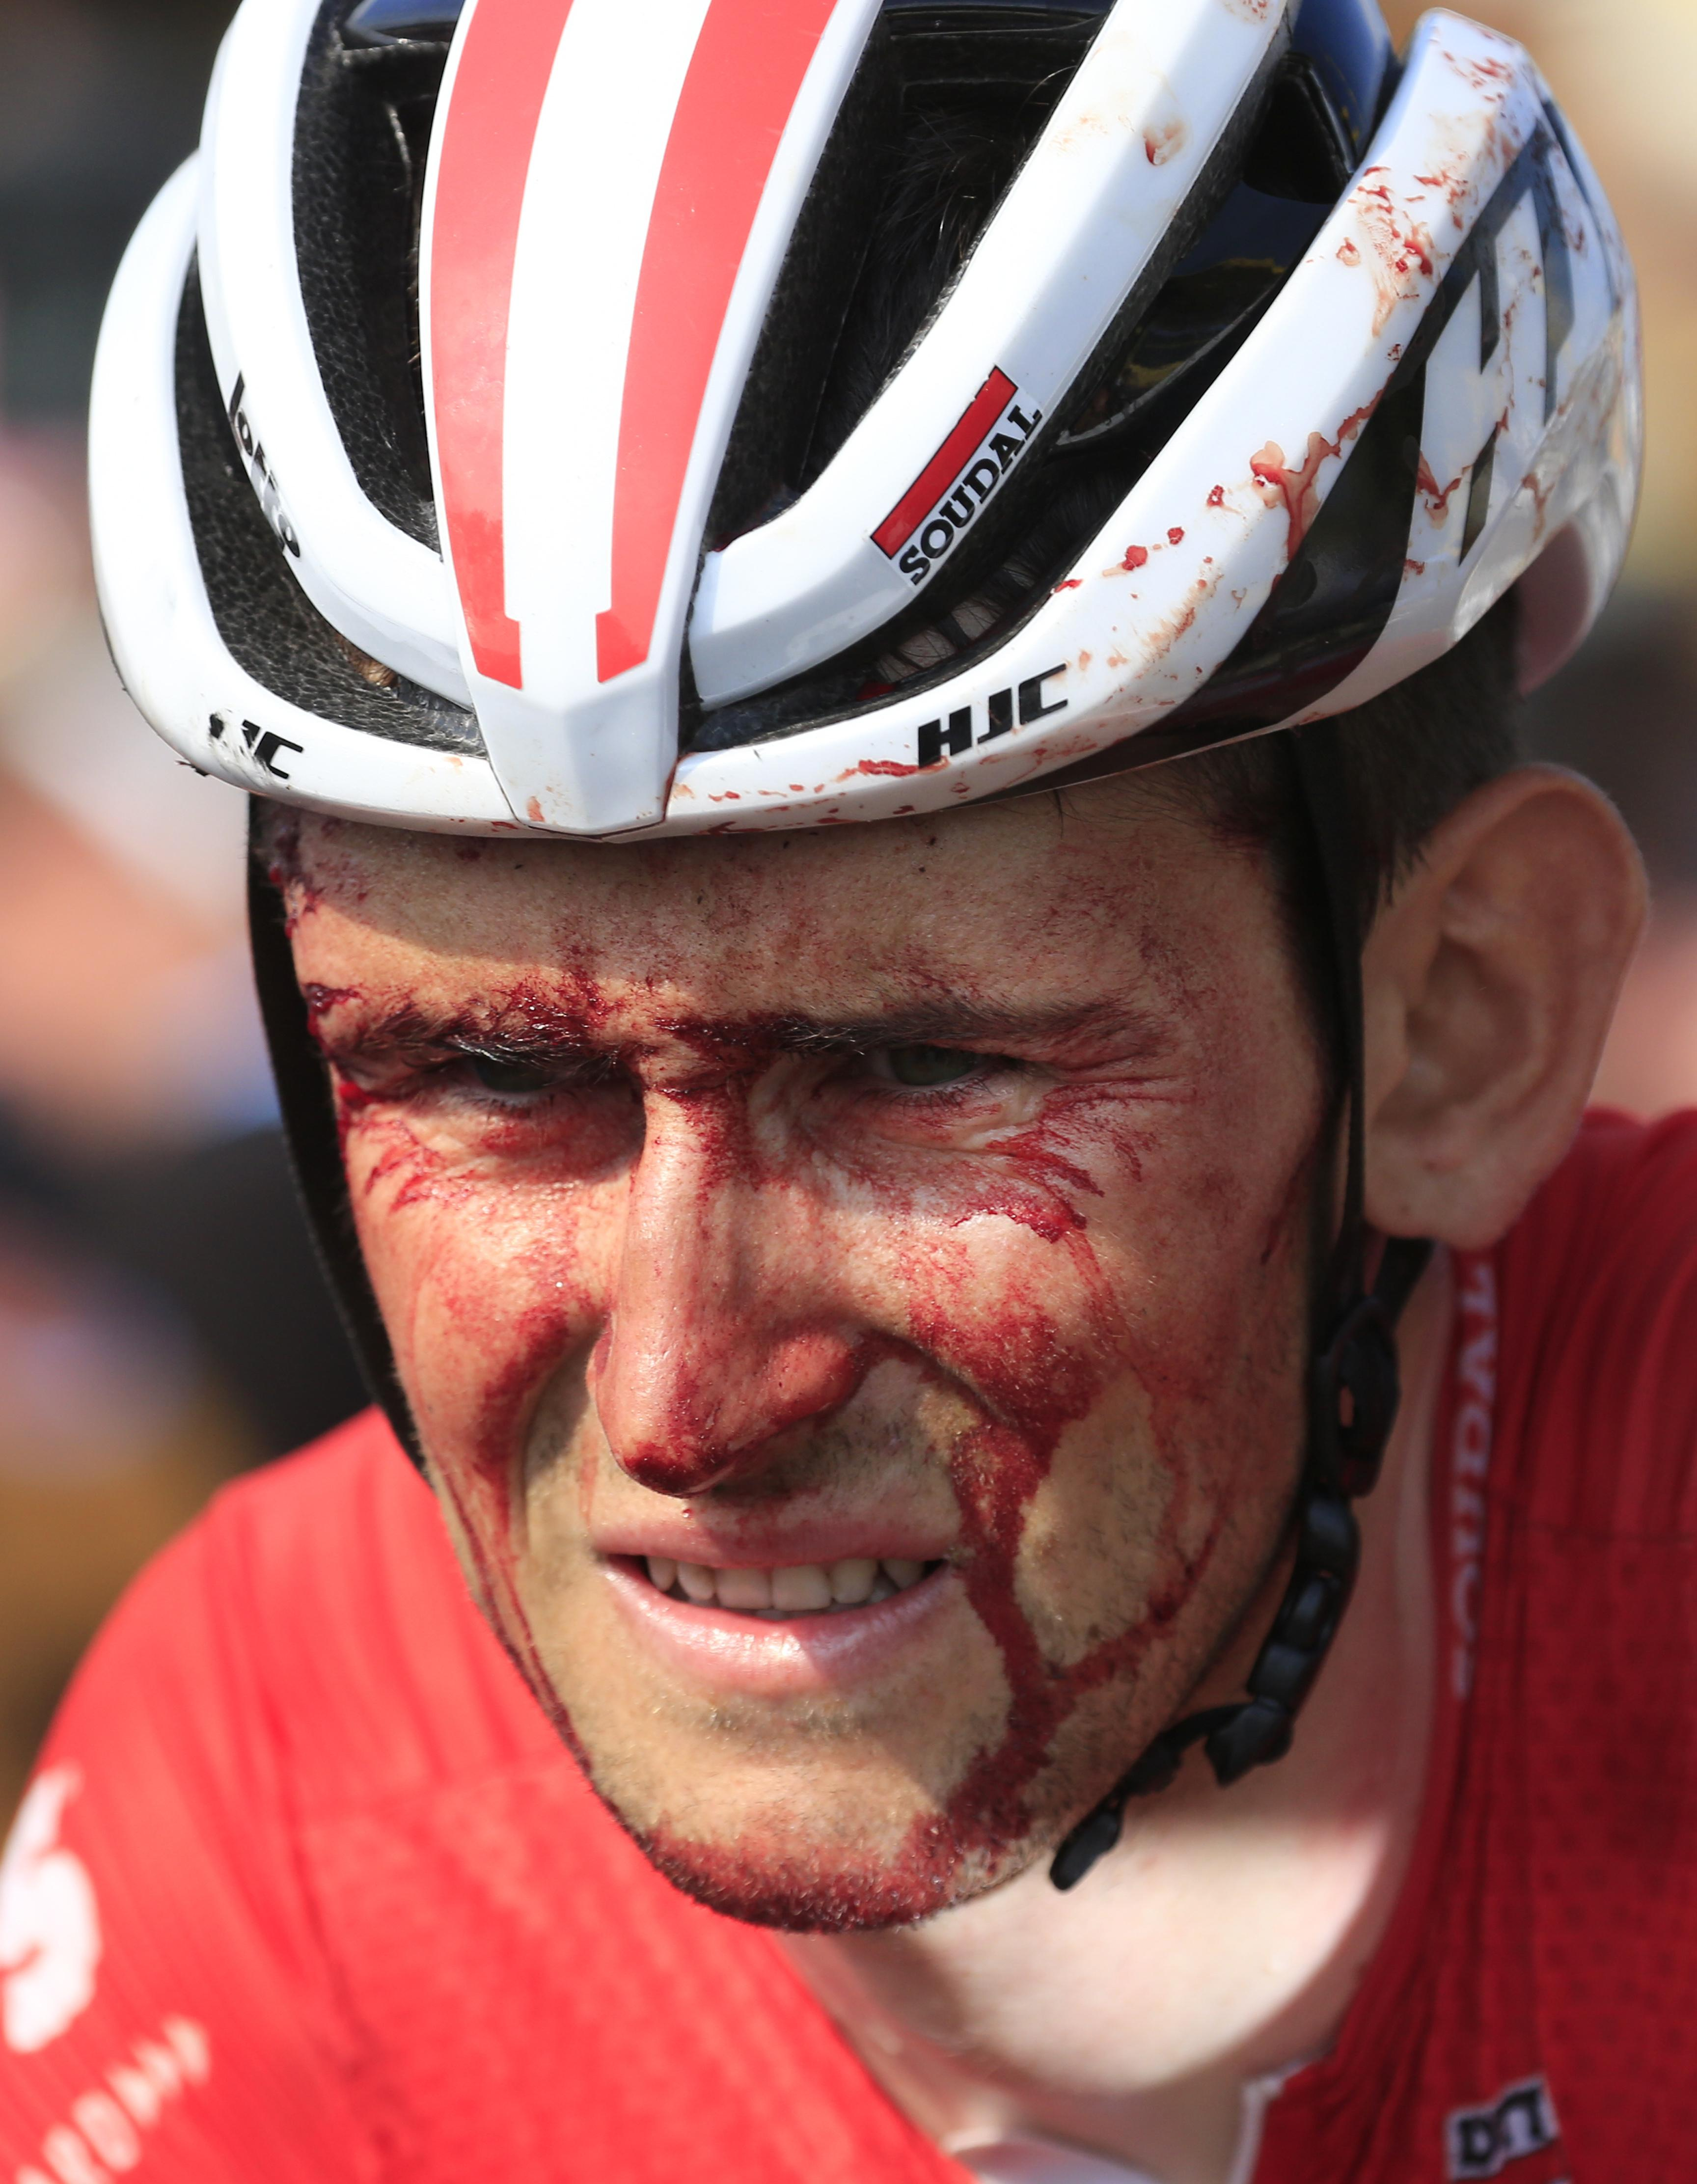 Tiesj Benoot rolled over the line in Sarzeau with a bloodied face after a crash close to the end of stage four